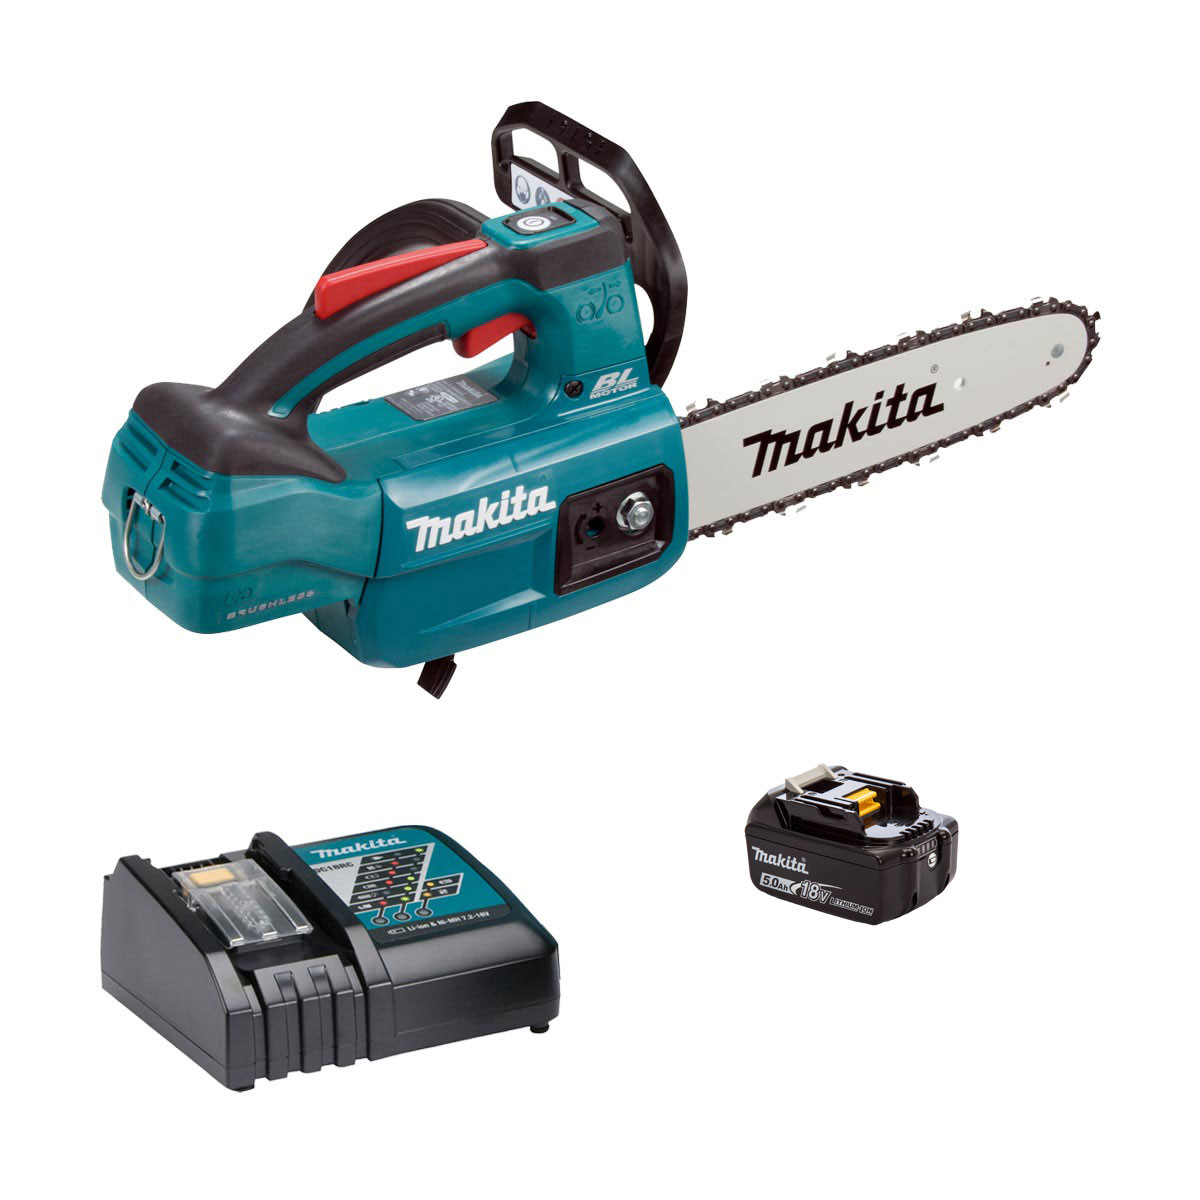 Makita DUC254 Single 18V Brushless Top-Handle Chainsaw 250mm - 1 x 5.0Ah + Charger